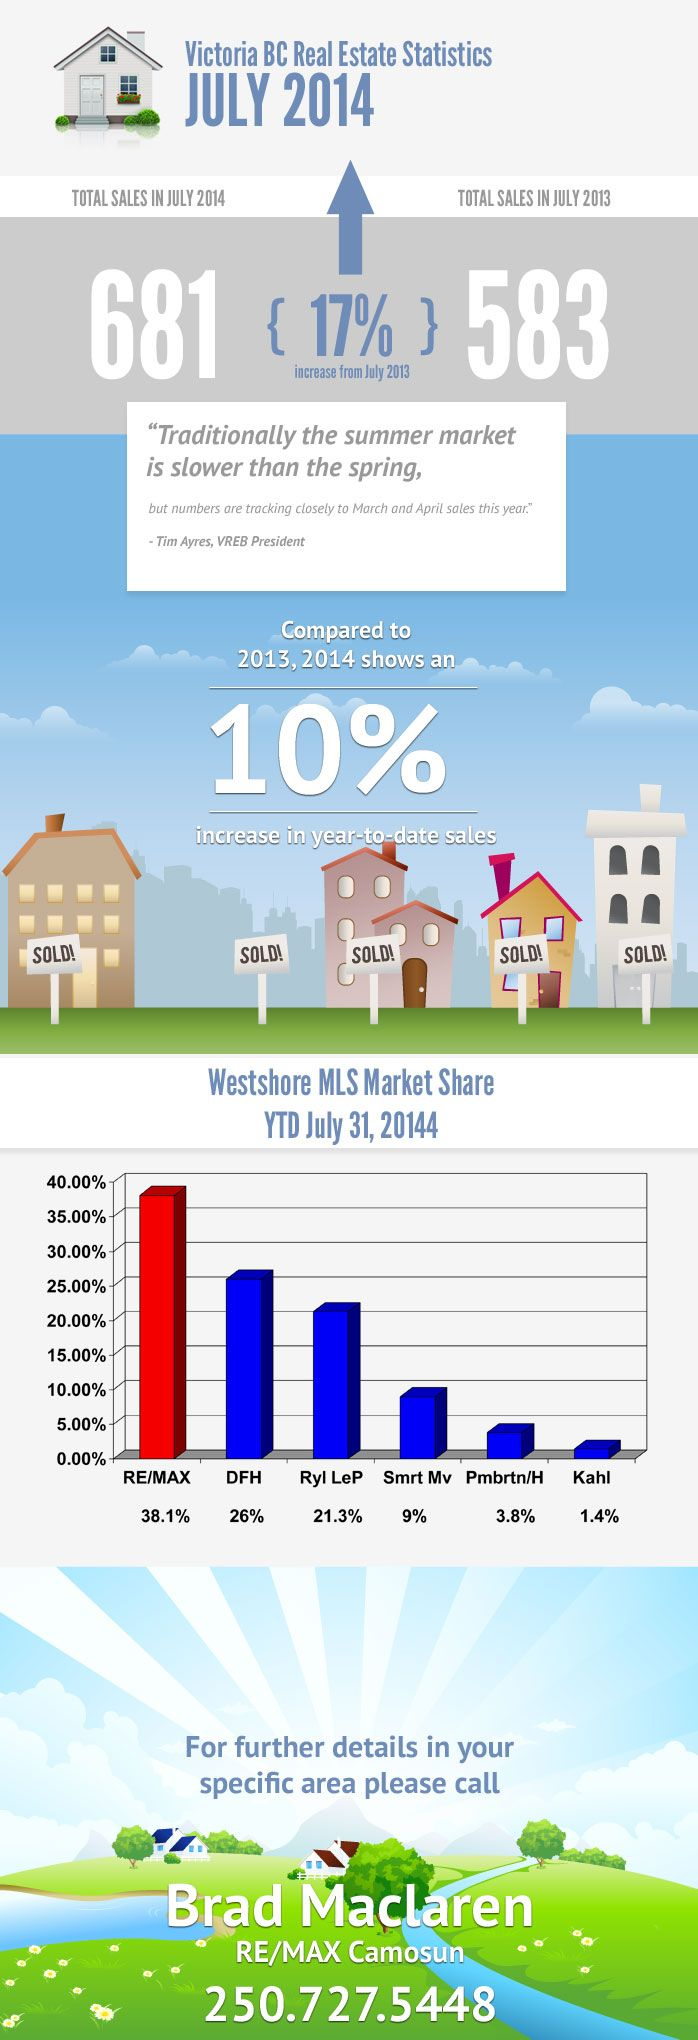 Victoria BC Real Estate Stats - July 2014